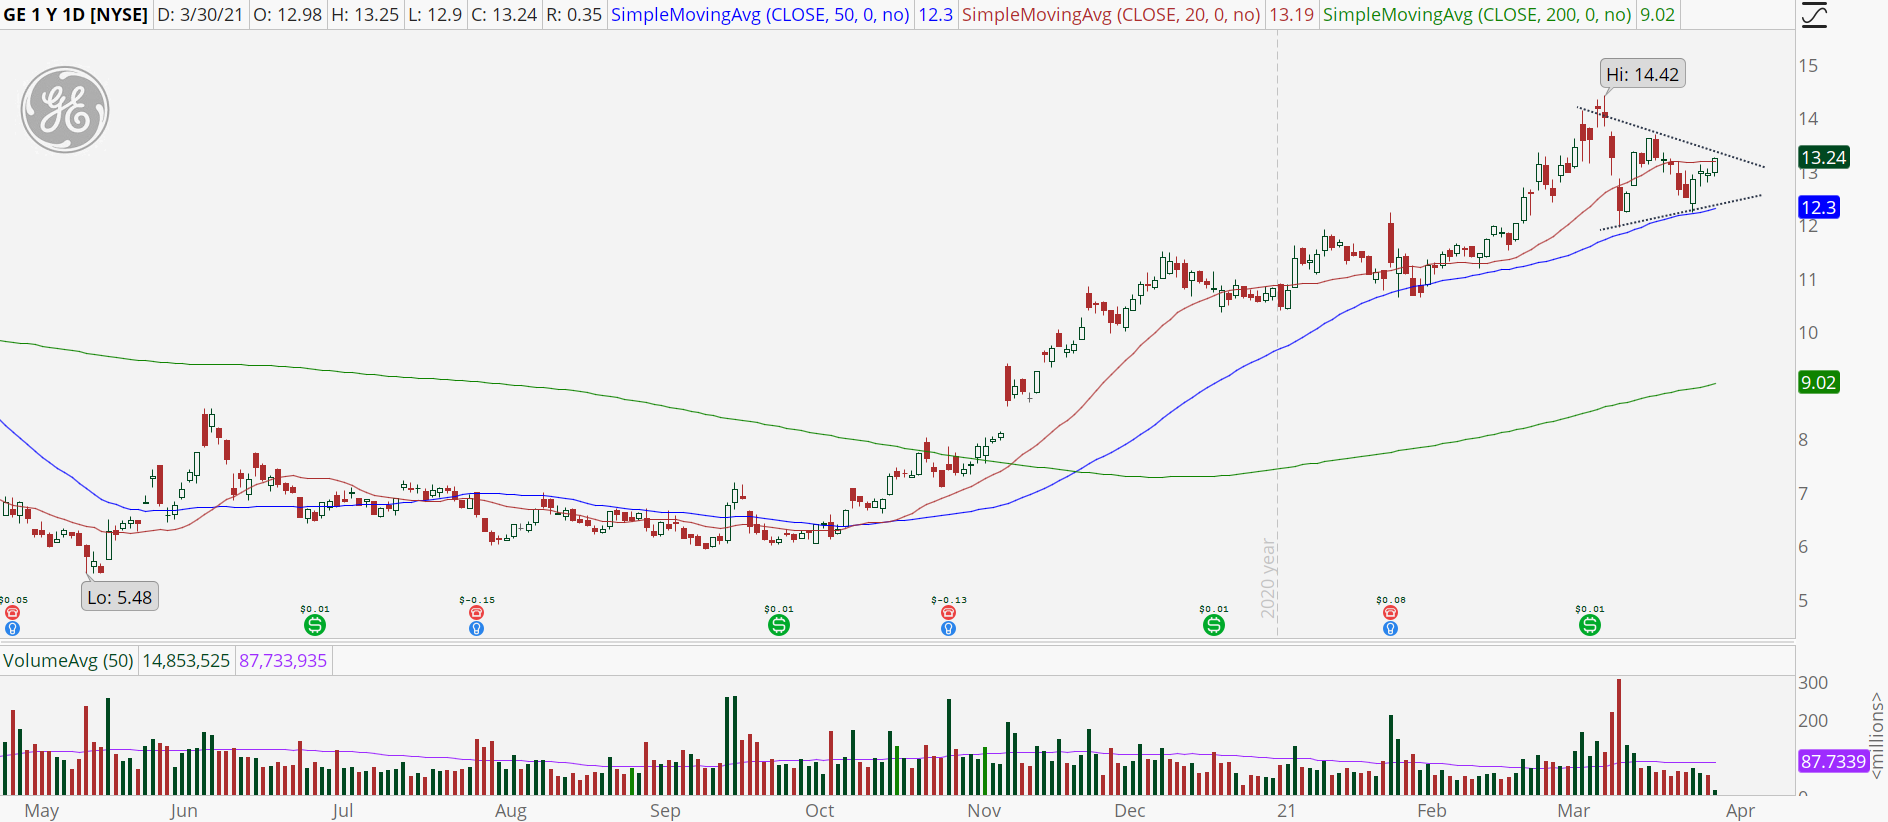 General Electric (GE) stock daily chart with symmetrical triangle